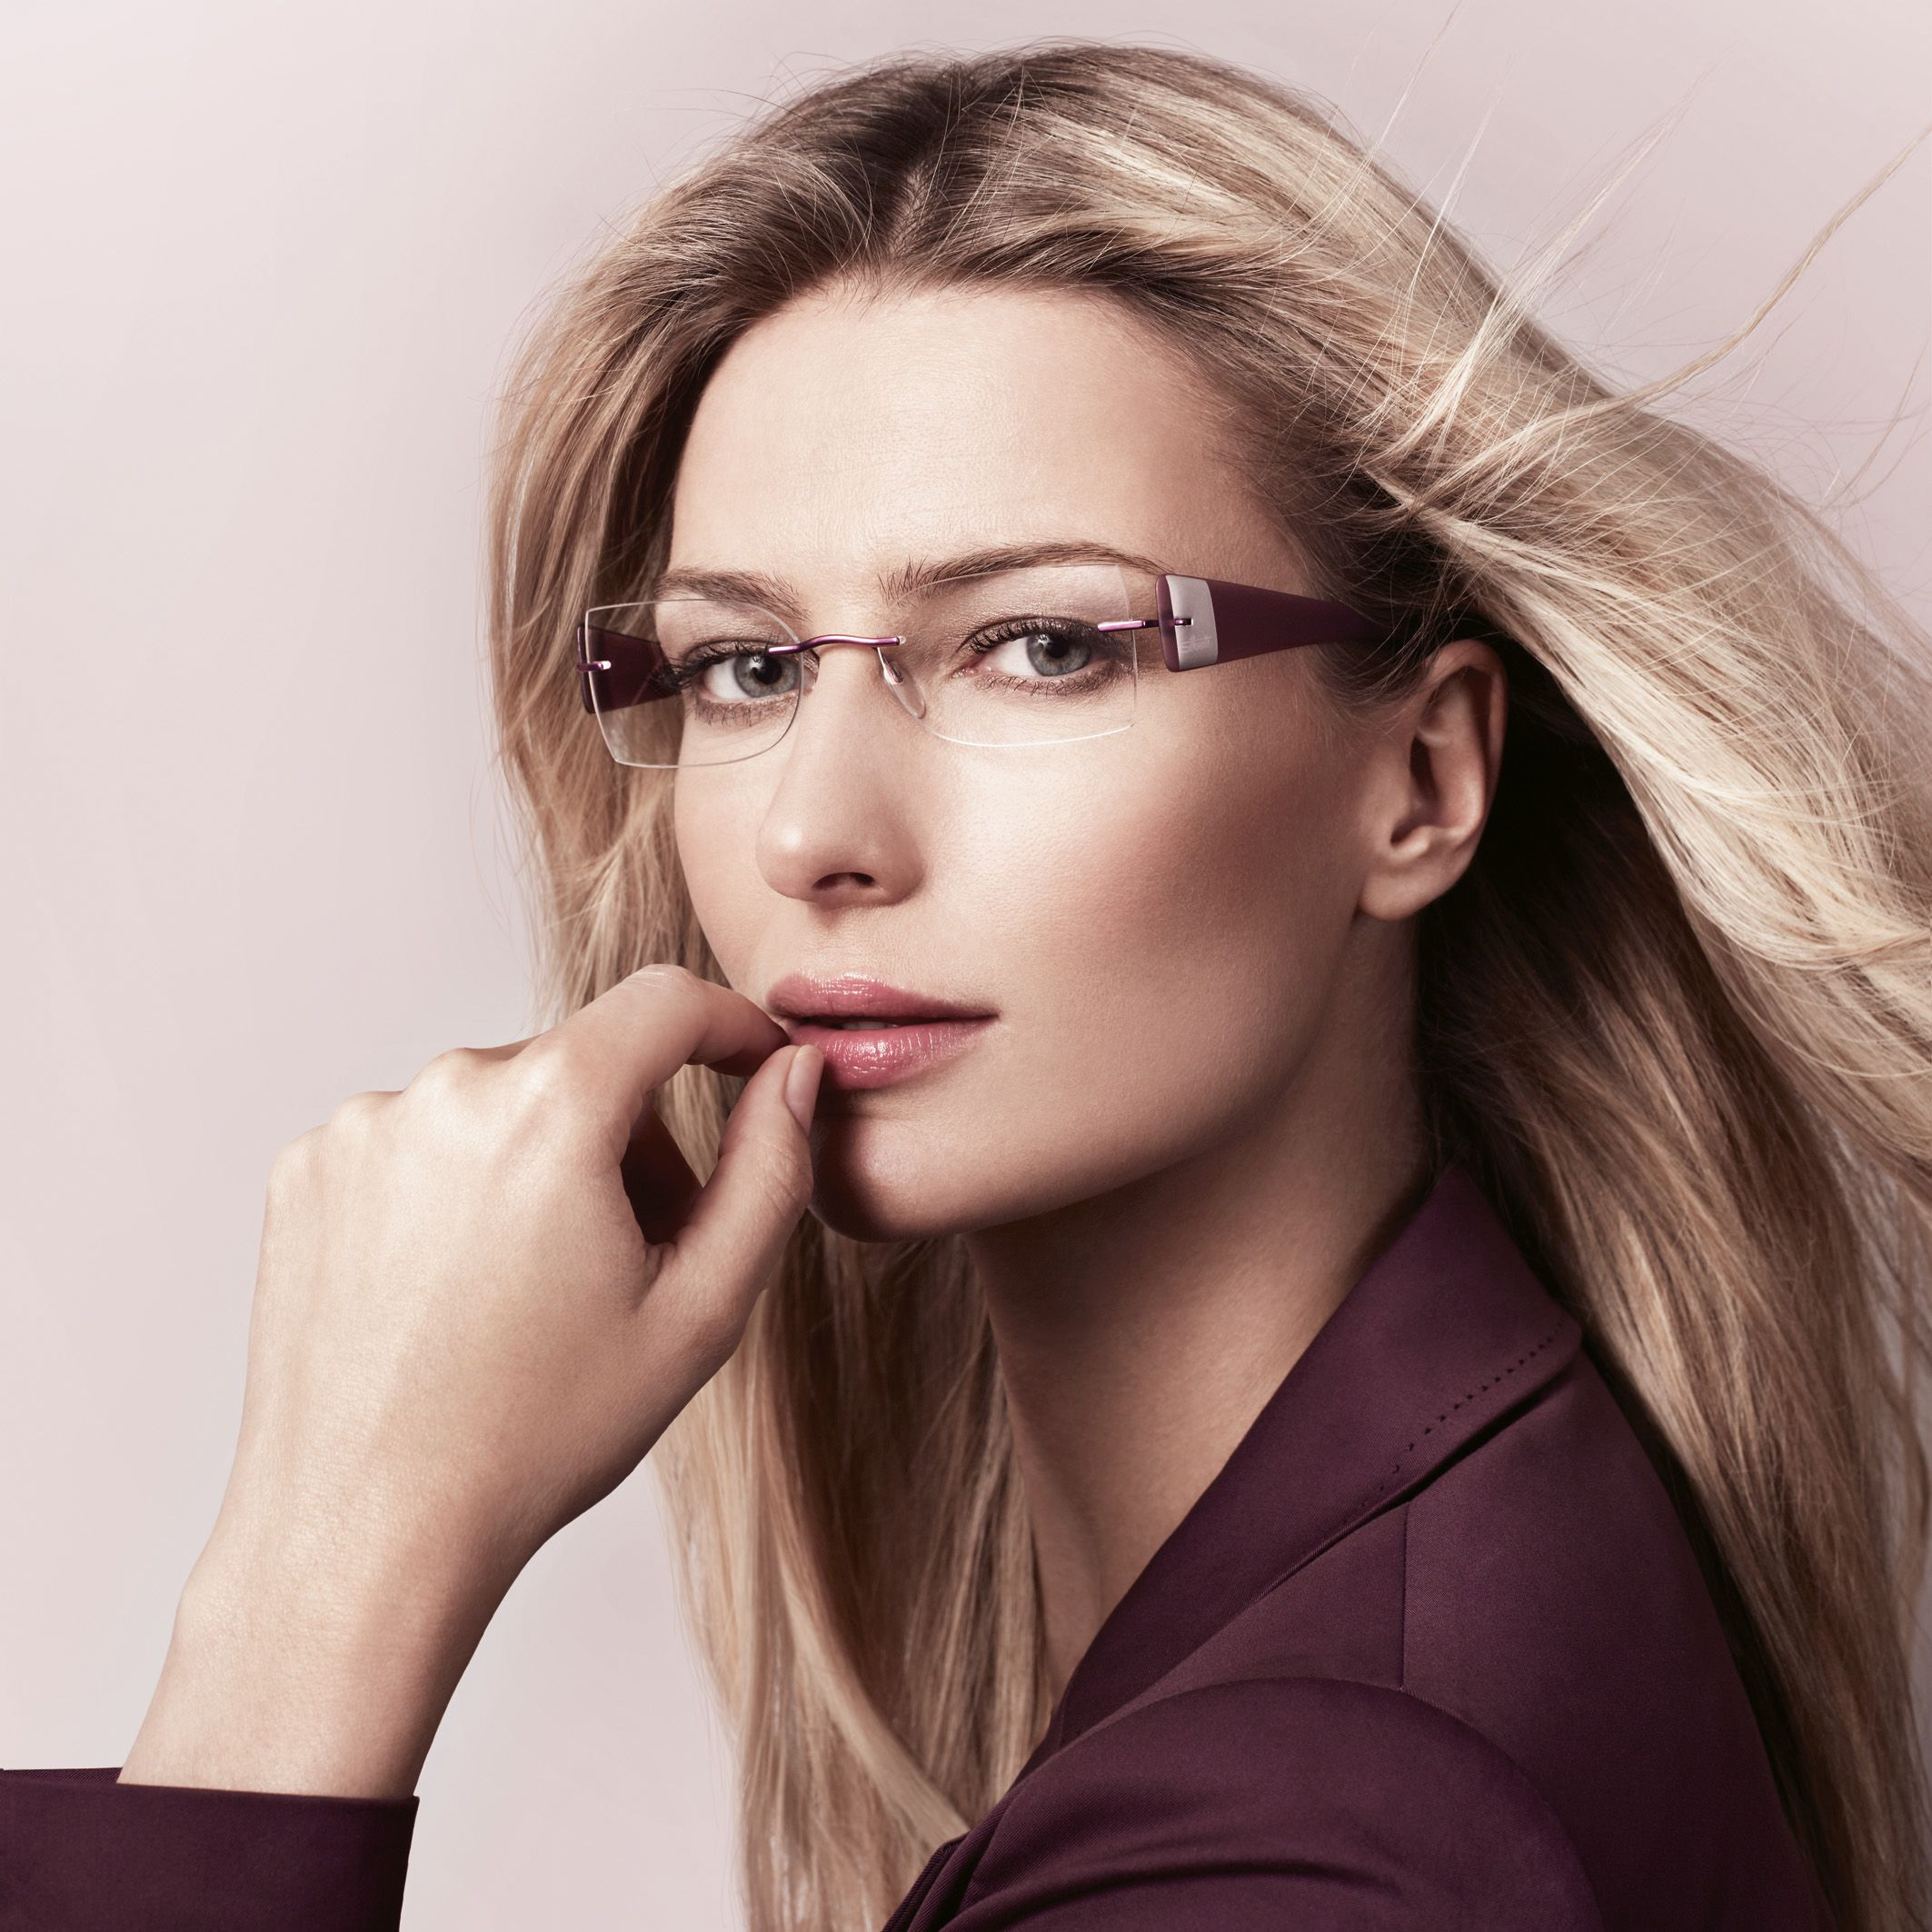 ba8f835930e Many styles of glasses can compromise your sense of individuality by ...